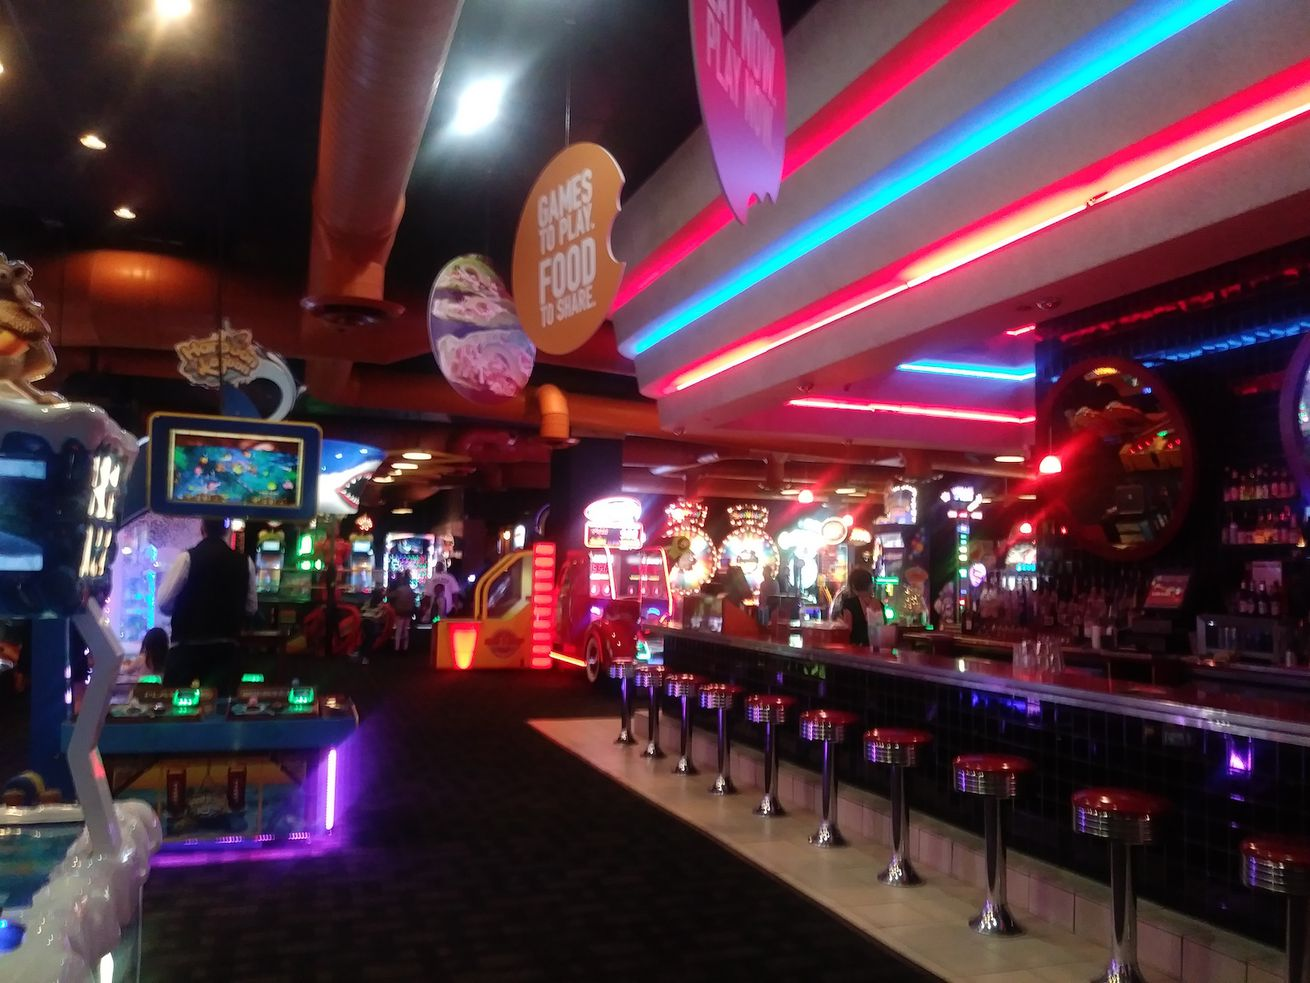 Dave & Buster's Gold Coast